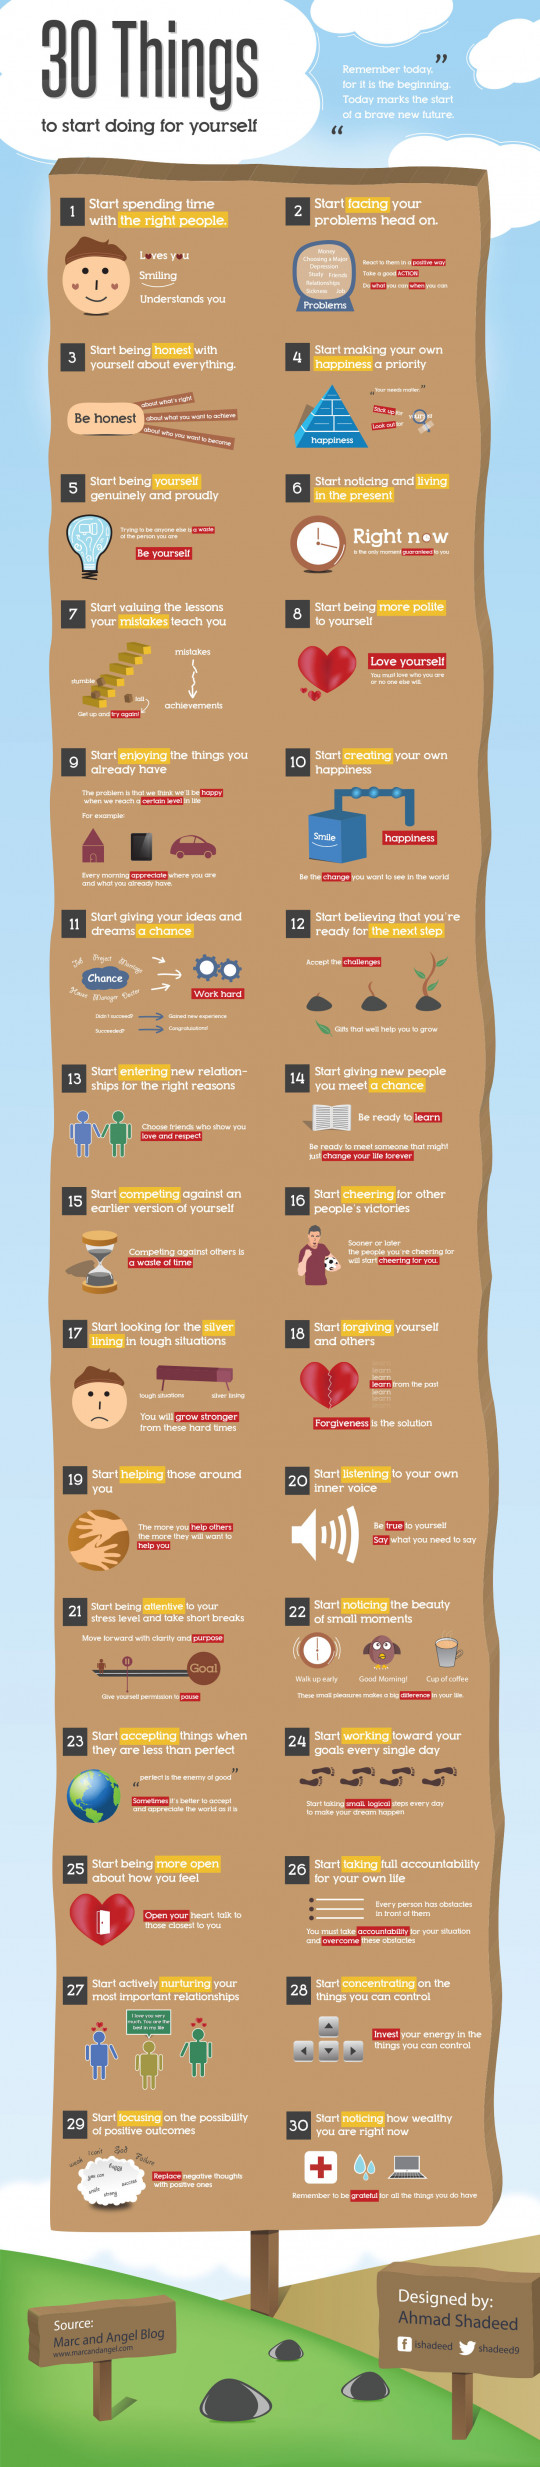 30 Things to start doing yourself